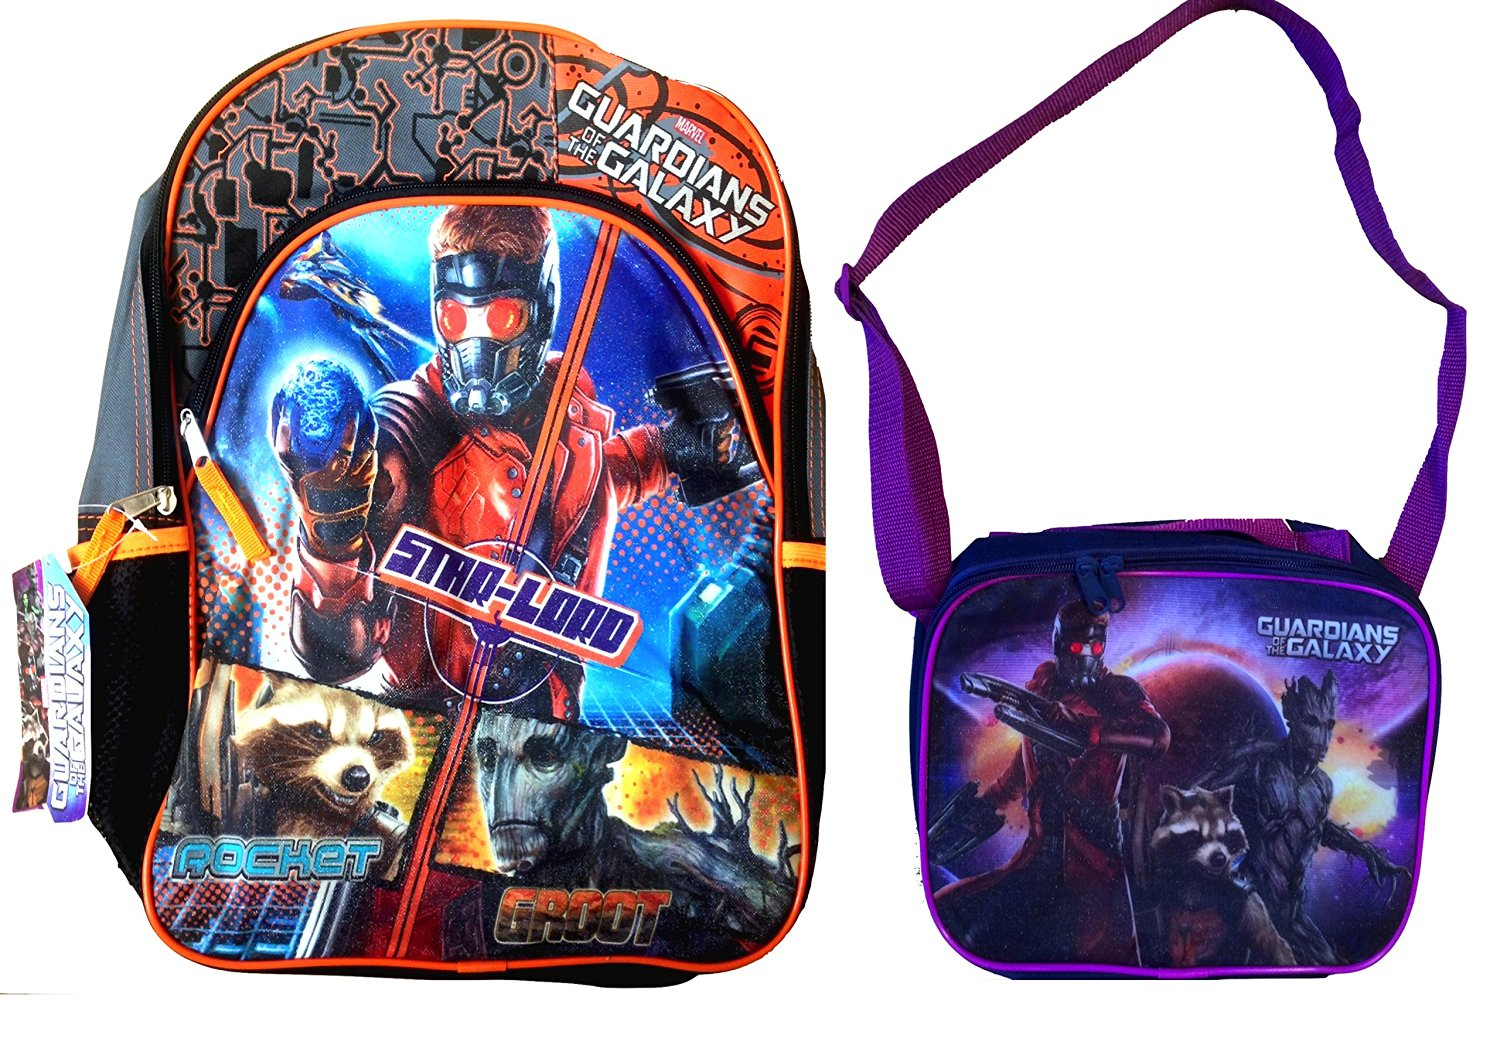 Guardians Of The Galaxy Back To School Children S Backpack With Matching Strap Lunch Box Purple